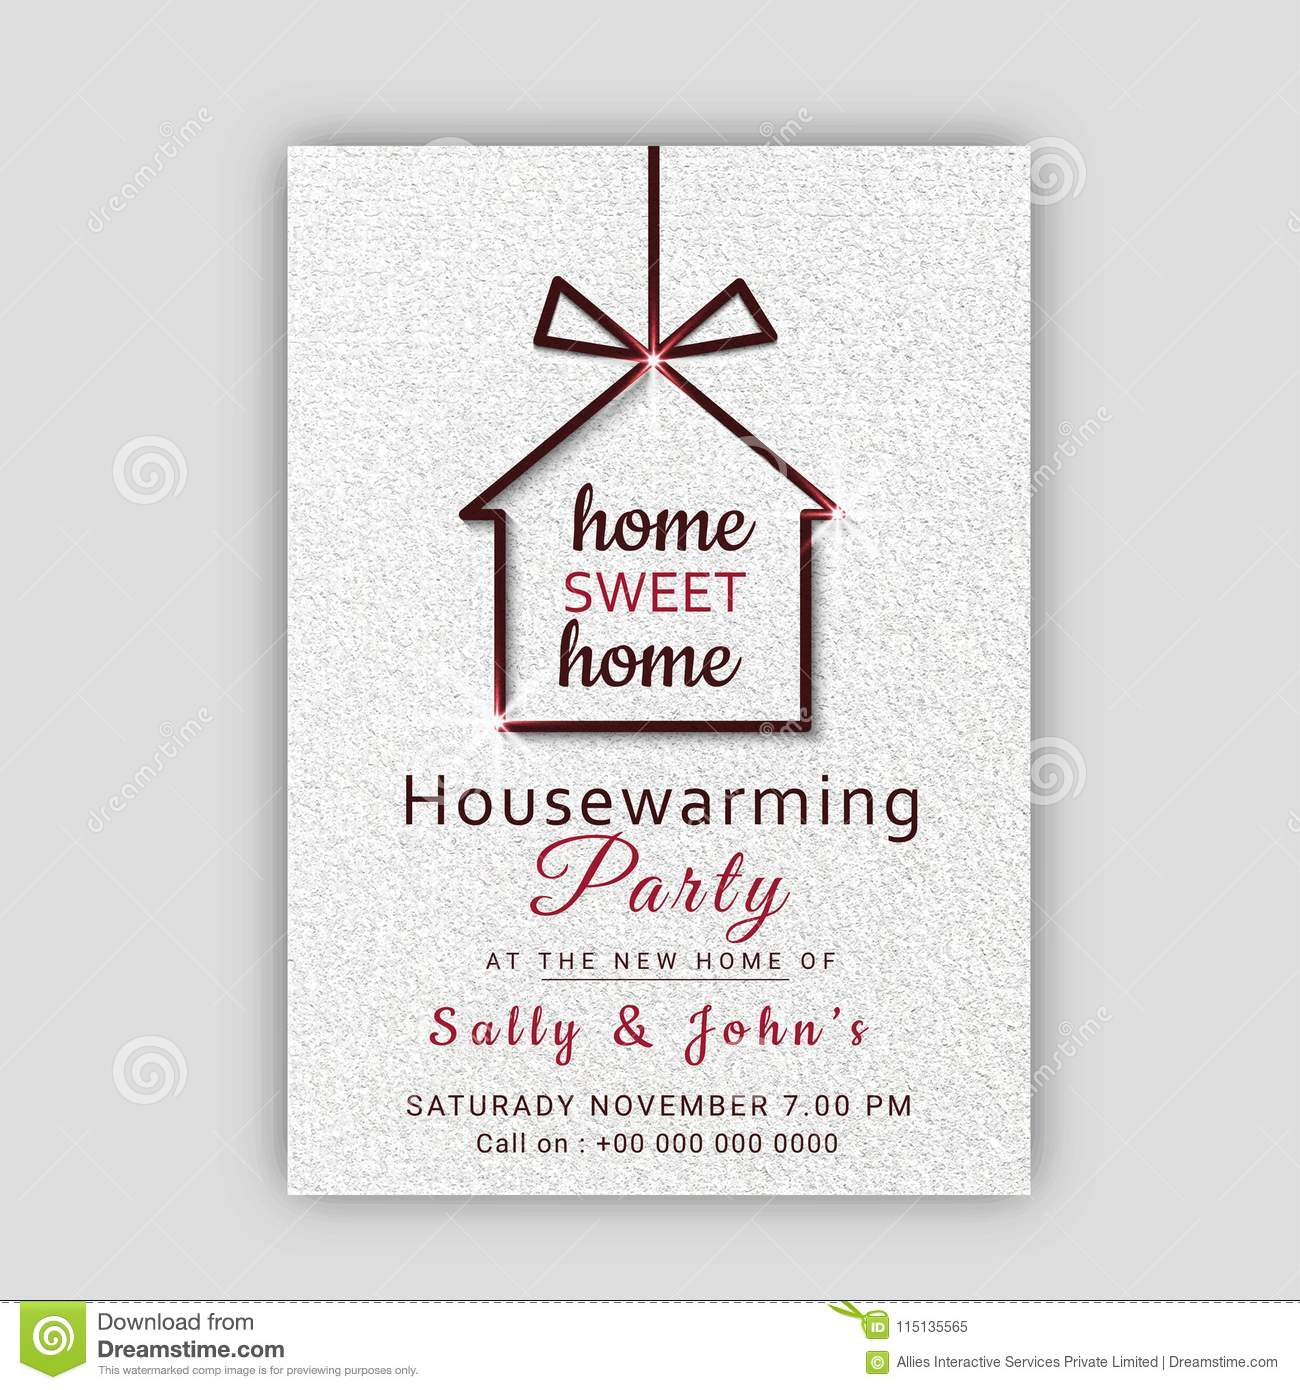 Housewarming Party Invitation Card Design Stock